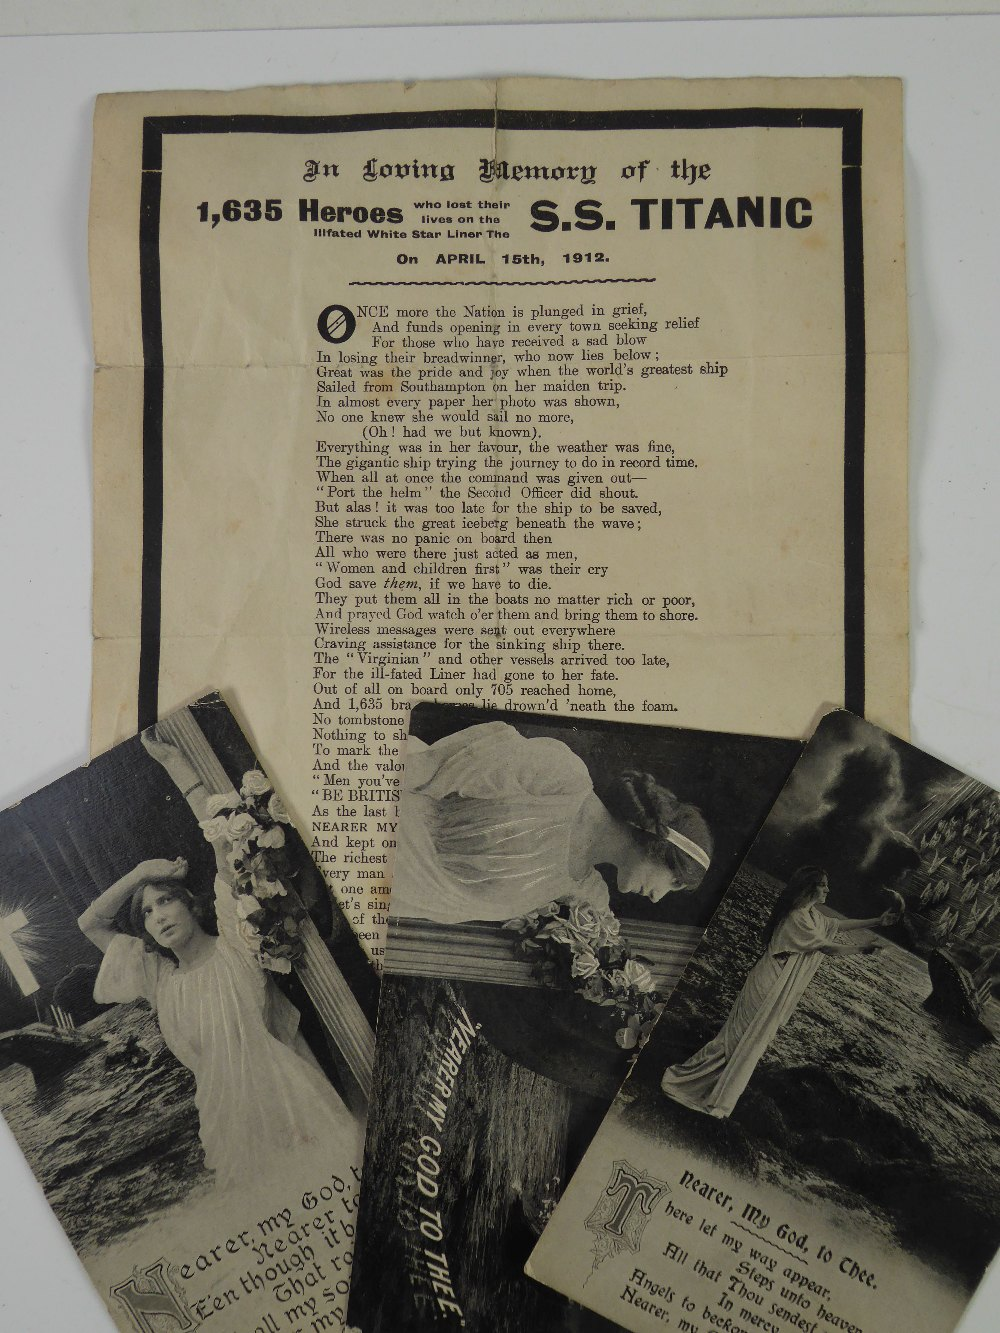 Lot 177 - W.J. REEVES 'TITANIC' DISASTER RELIEF FUND PRINTED VERSE, titled 'In Loving Memory of the 1635